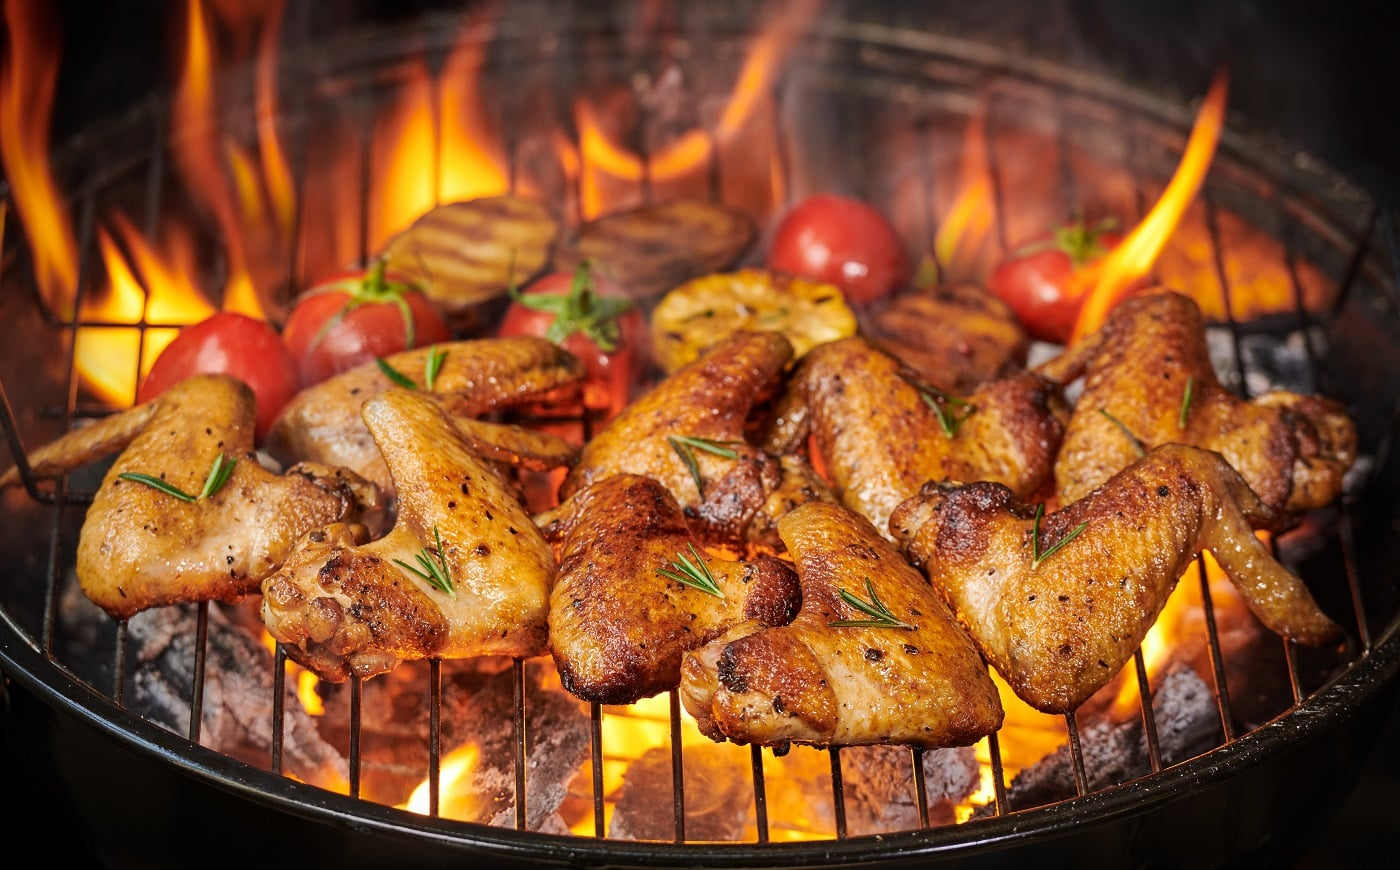 Grilled chicken wings on the flaming grill with Grilled vegetables in barbecue sauce with pepper seeds rosemary, salt. top view with copy space. tasty snack. Flat lay. Healthy lunch menu. Diet food.